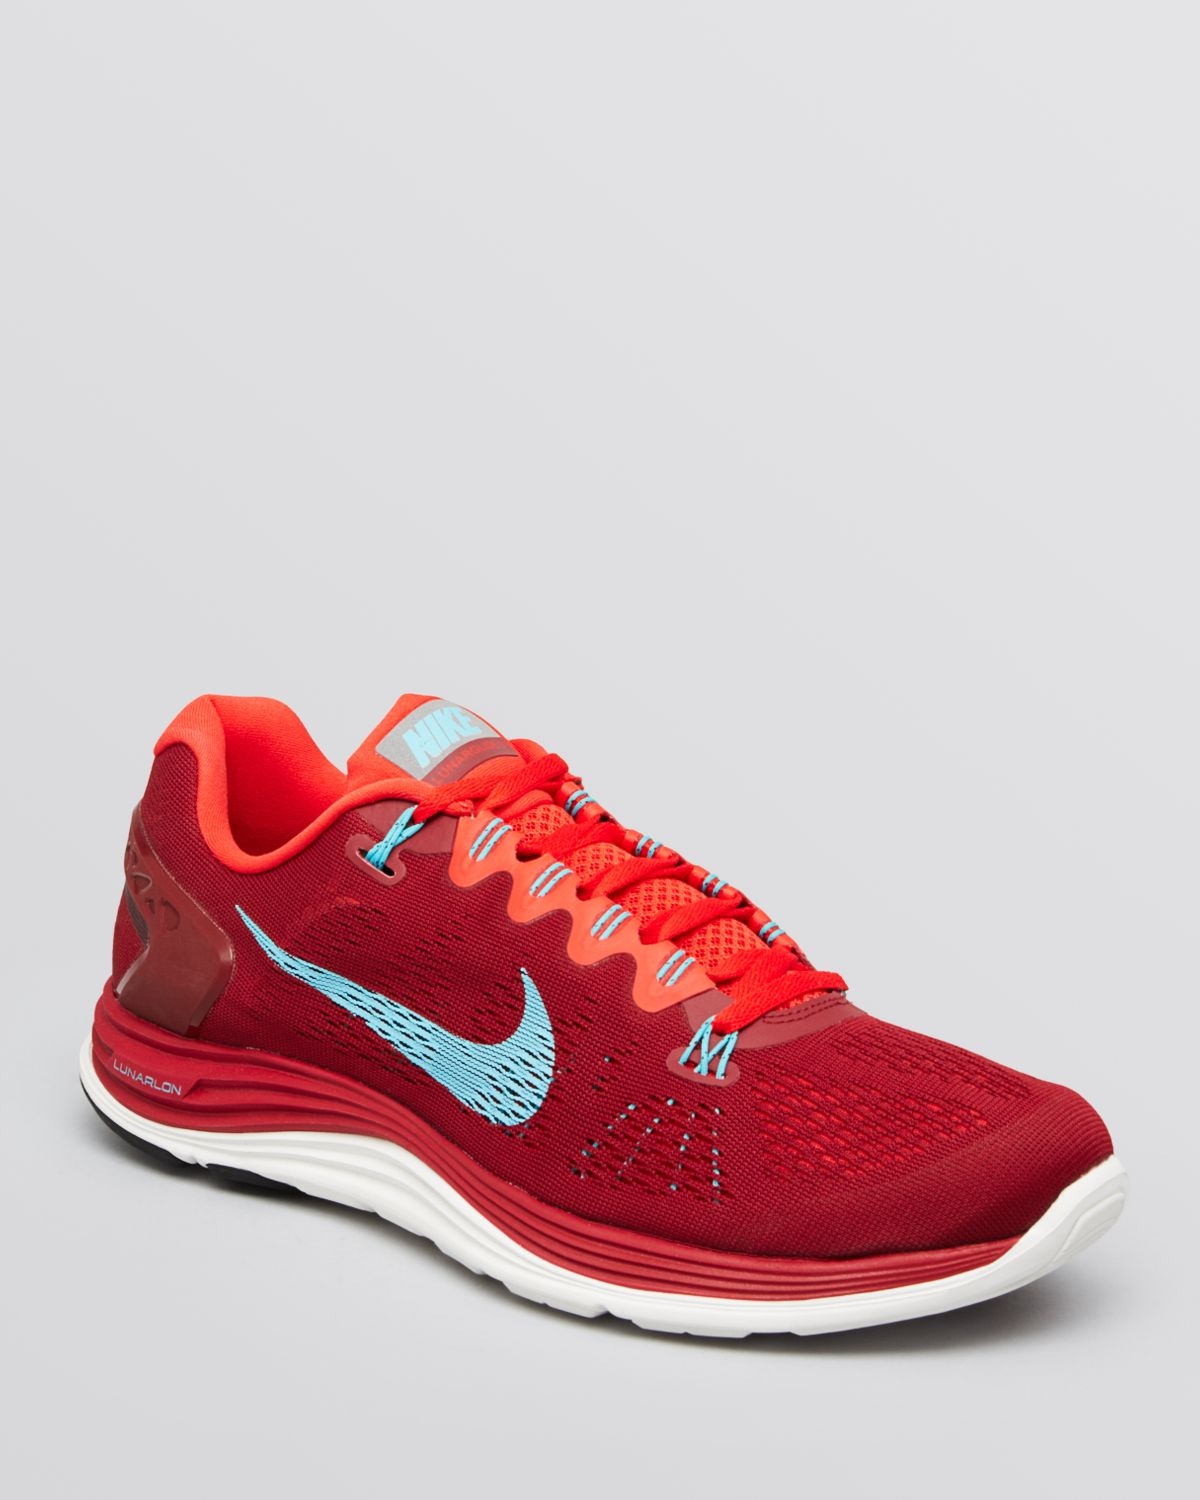 d9f86542e11 sweden nike mens shoes nike lunarglide 7 running shoe promotions 747355 601  548b1 d1d11  czech lyst nike lunarglide 5 sneakers in red for men 22056  248cb